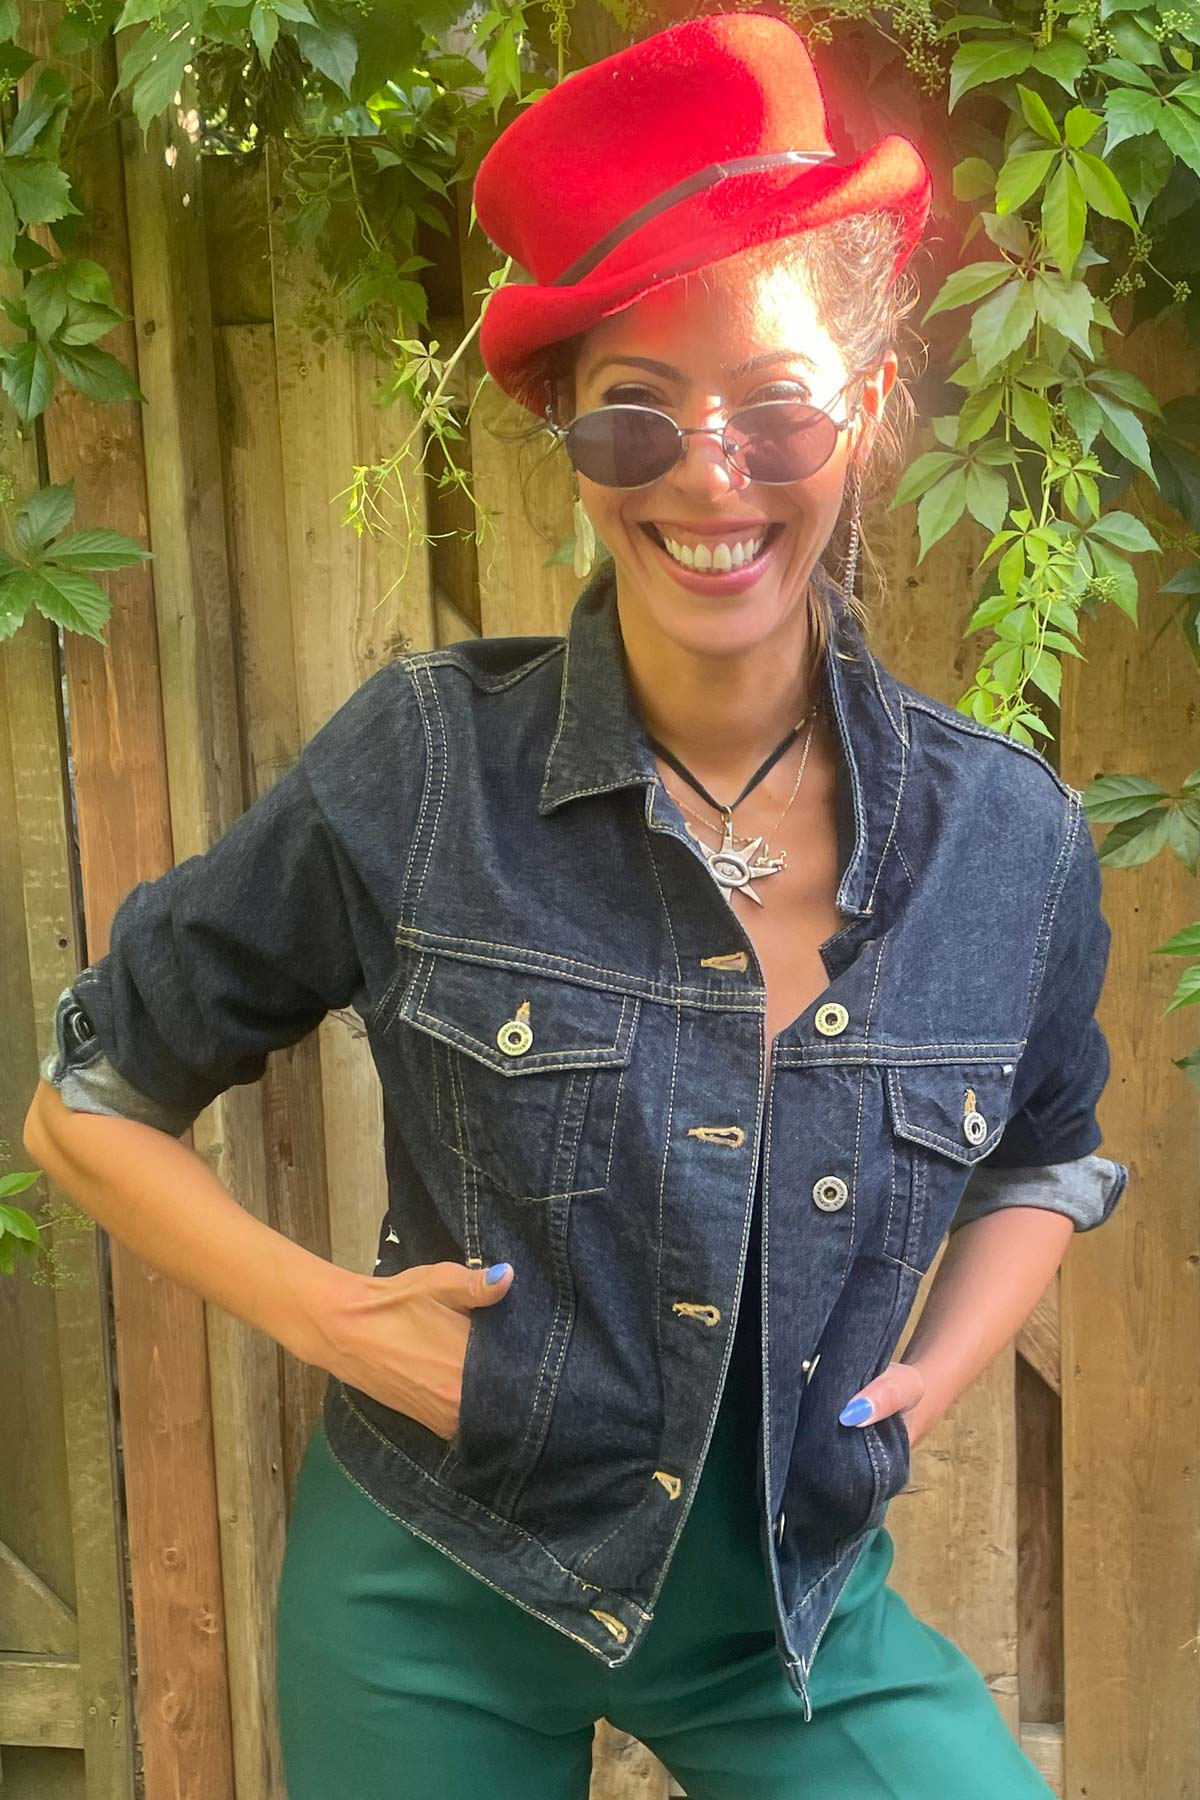 girl with denim jacket and red hat